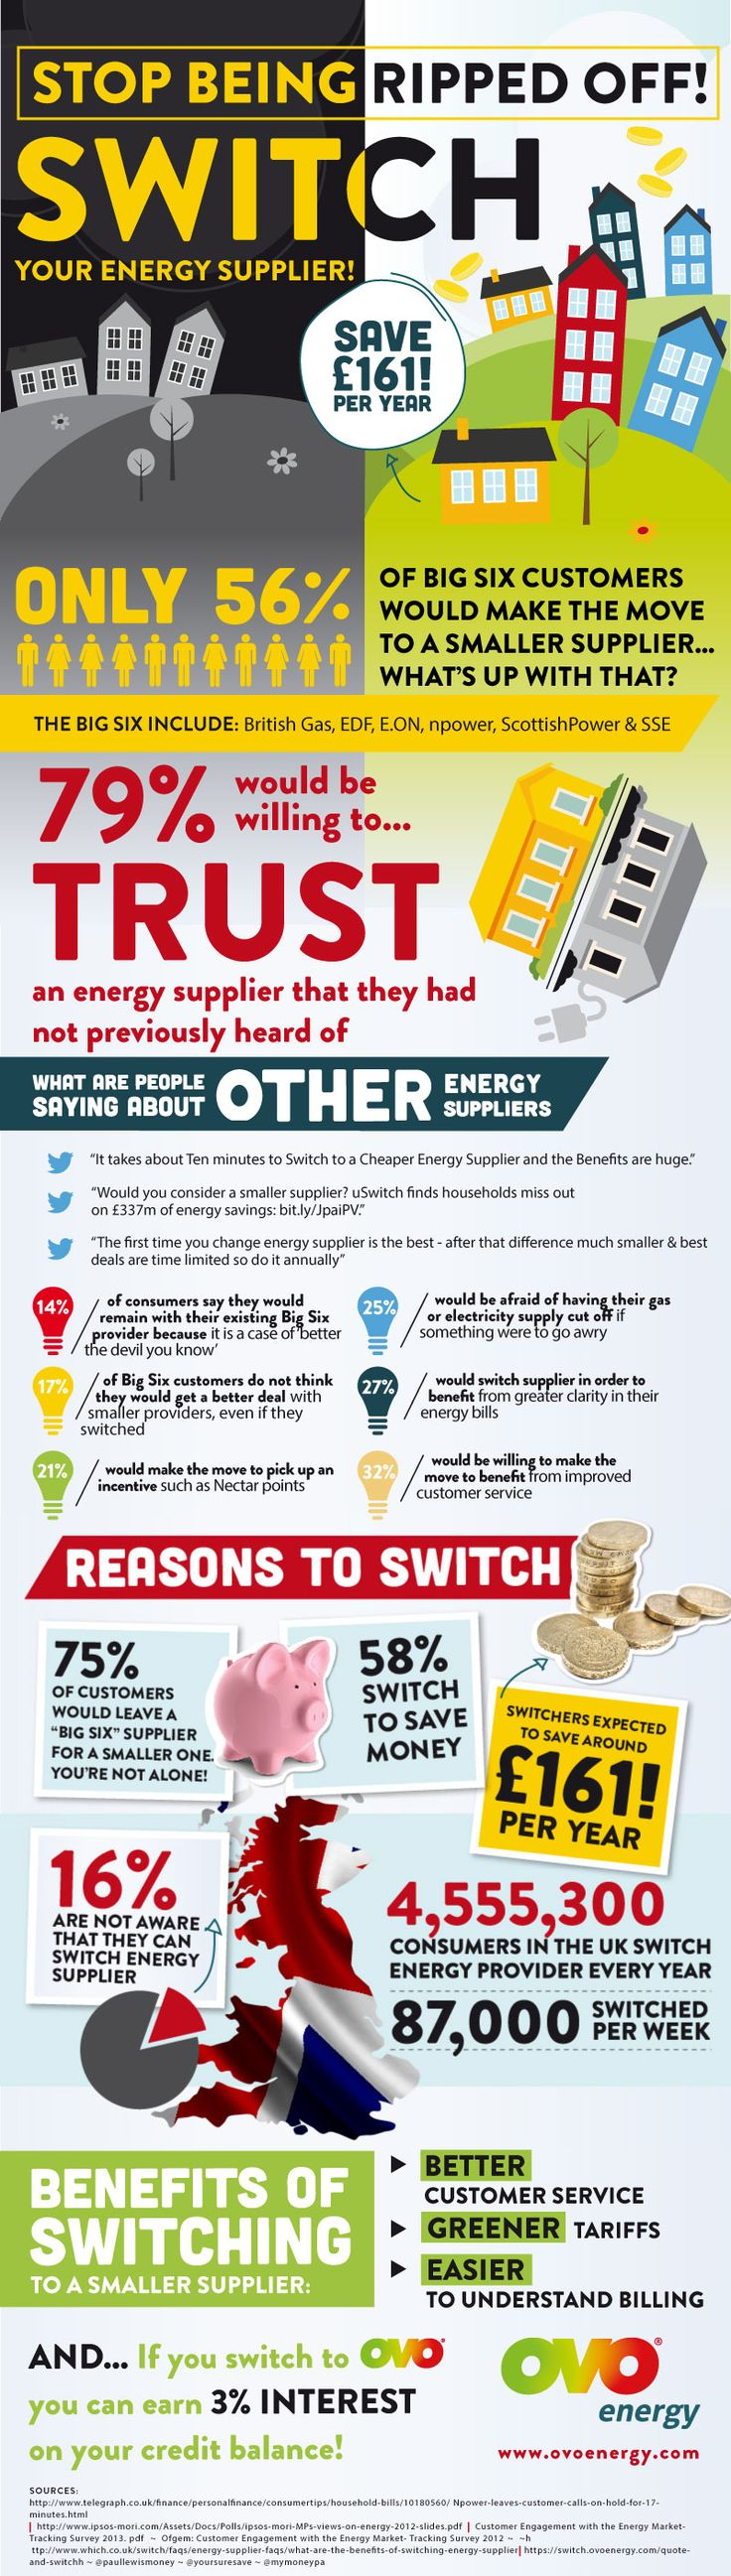 Switch Energy Supplier Infographic